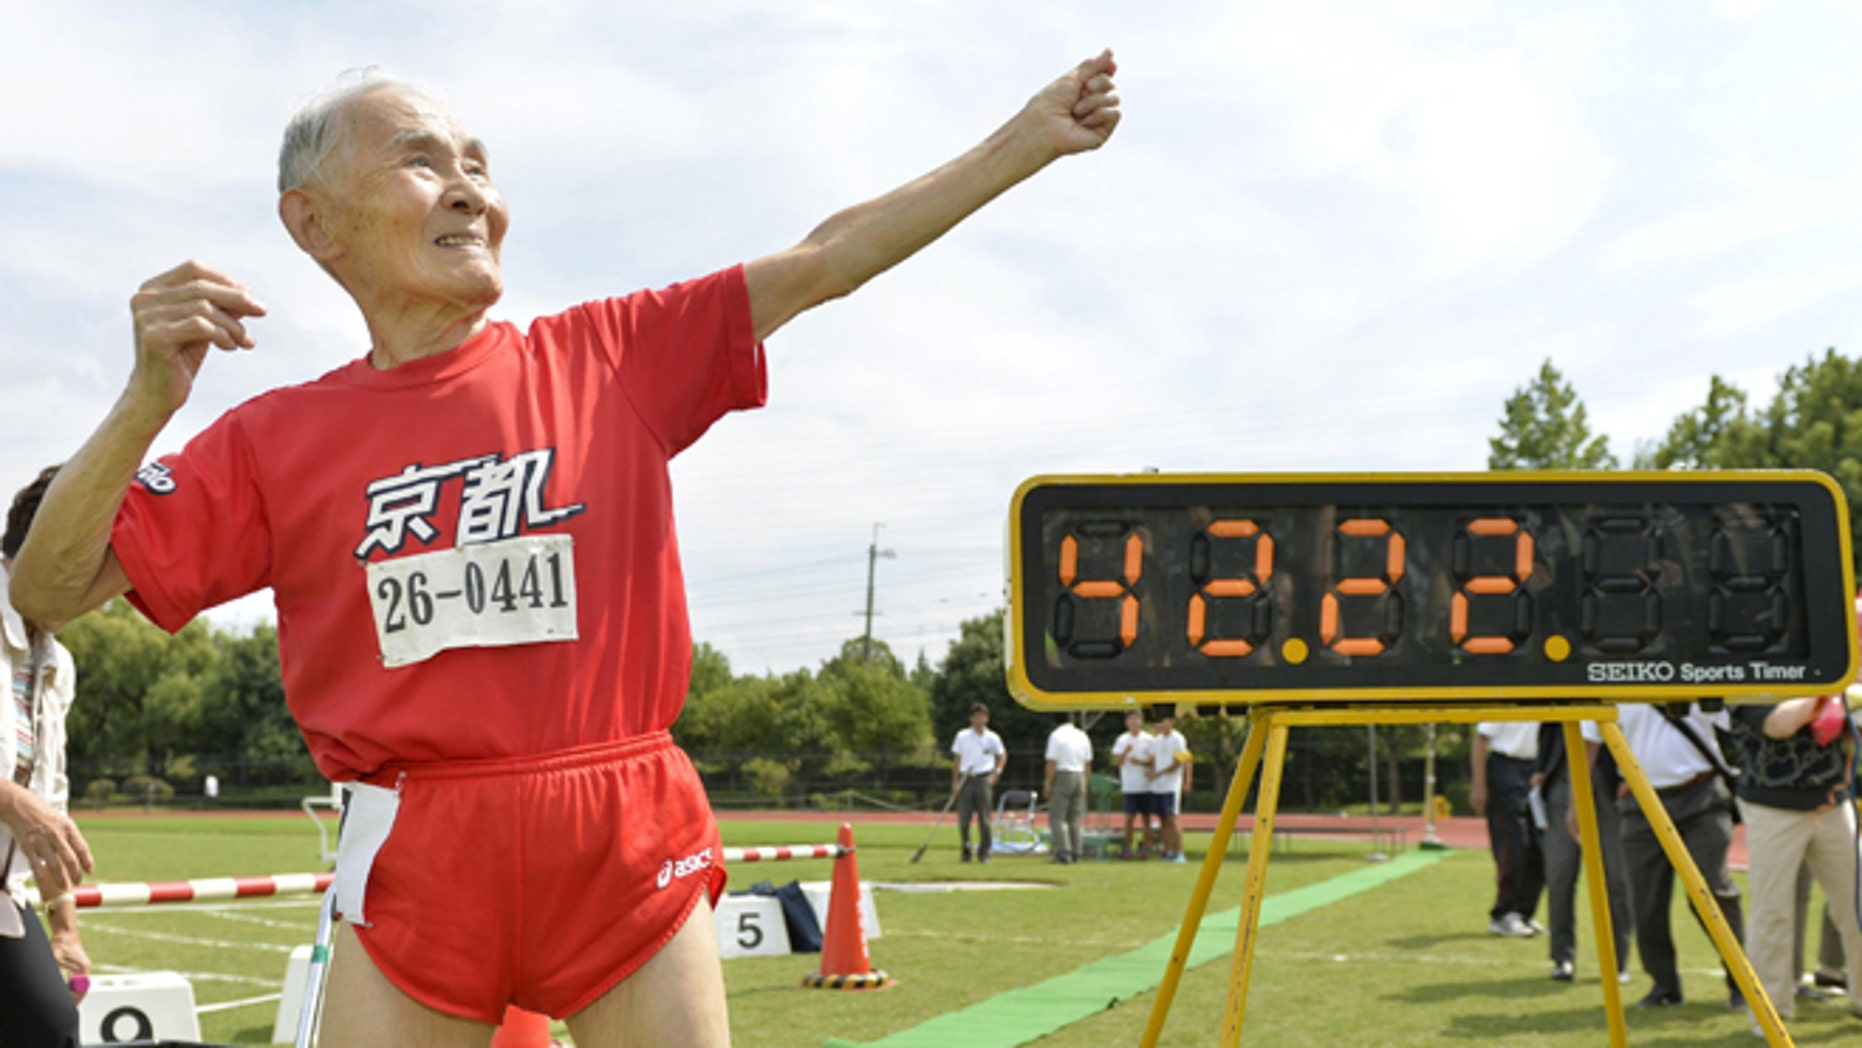 Sept. 23, 2015: Japan's Hidekichi Miyazaki, 105, poses like Jamaica's Usain Bolt in front of an electric board showing his 100-meter record time of 42.22 seconds at an athletic field in Kyoto, Japan.